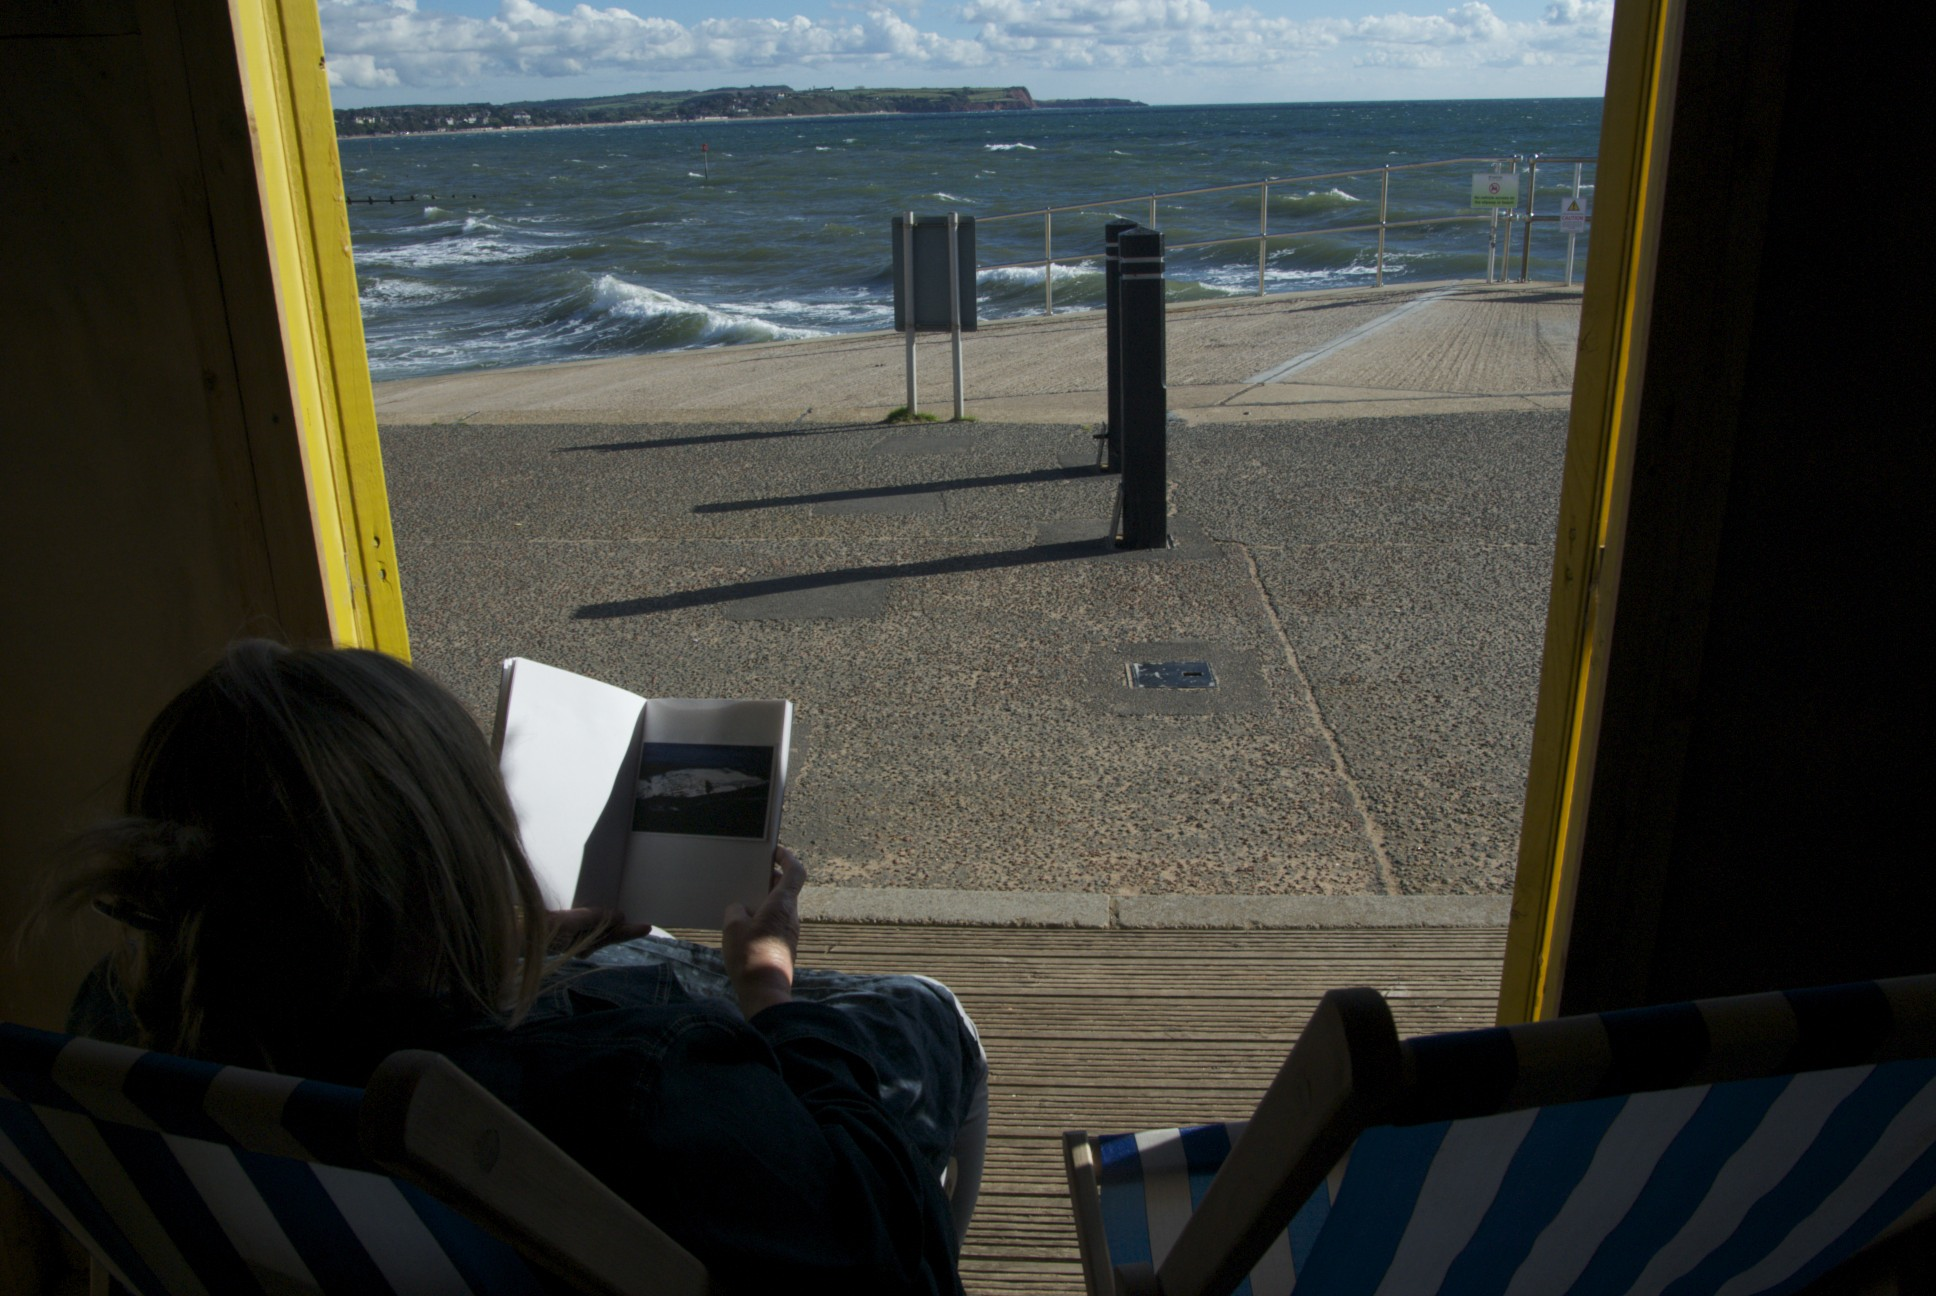 view of the seafront with choppy water from within a beach hut, across the horizon there is the edge of an island.